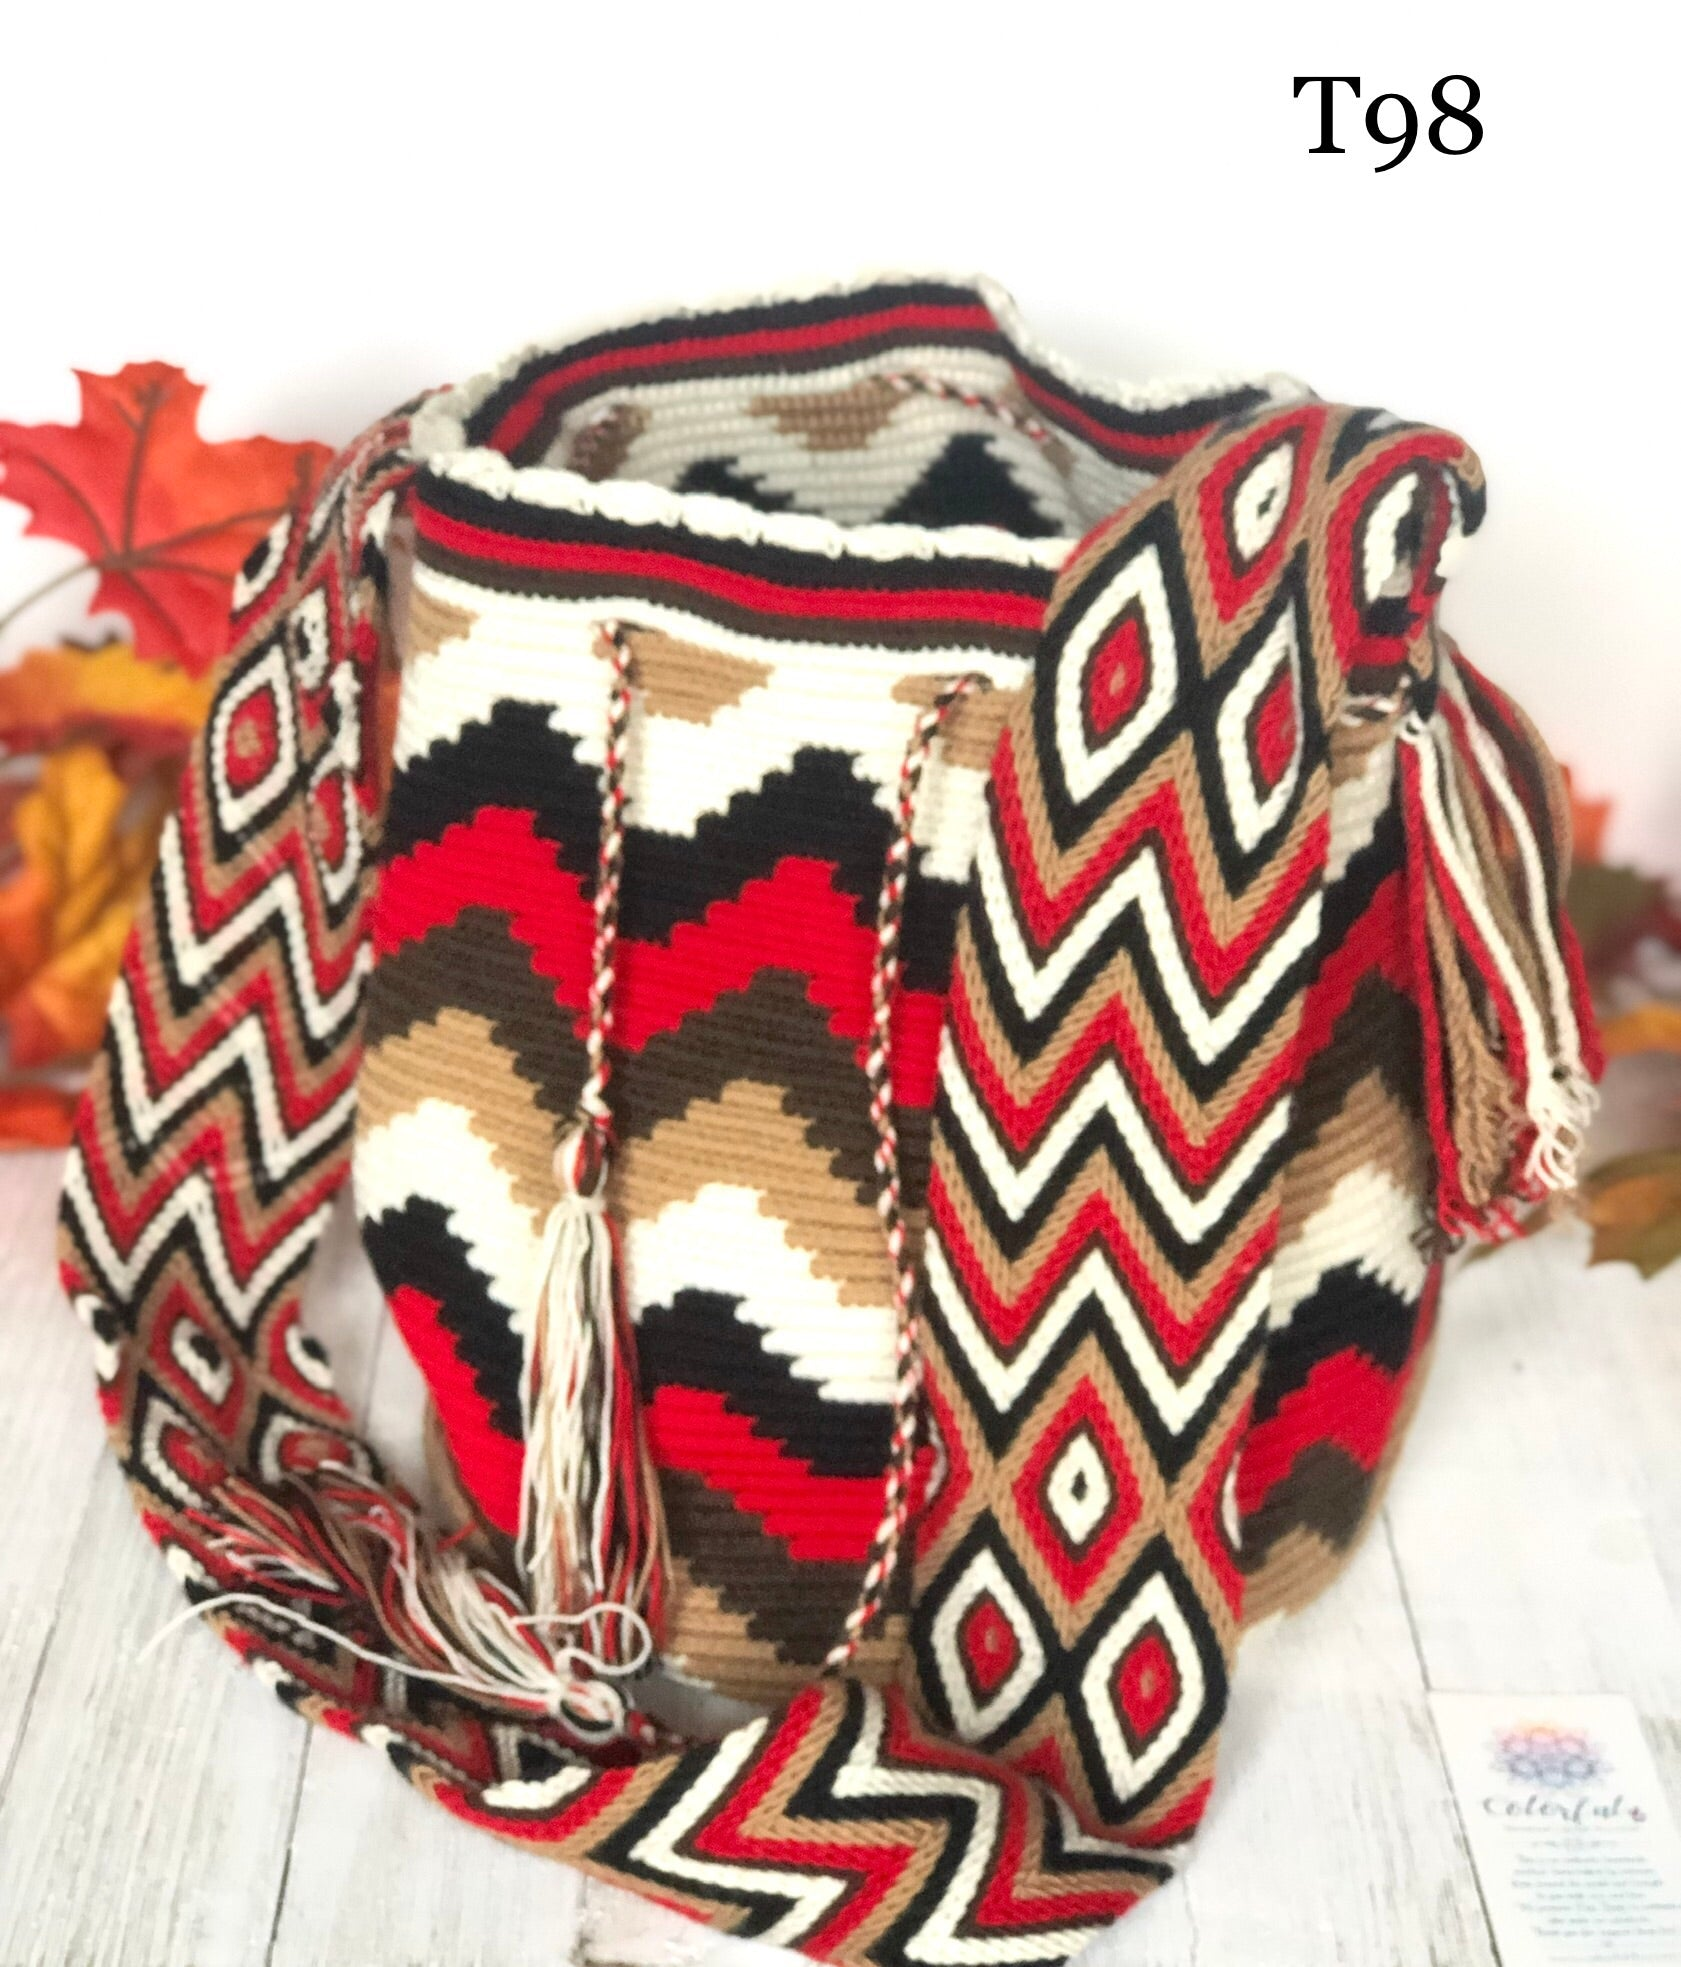 Red Chevron Handbag for Fall/Winter | Crossbody Crochet Bag | Boho Bag | Wayuu Mochila